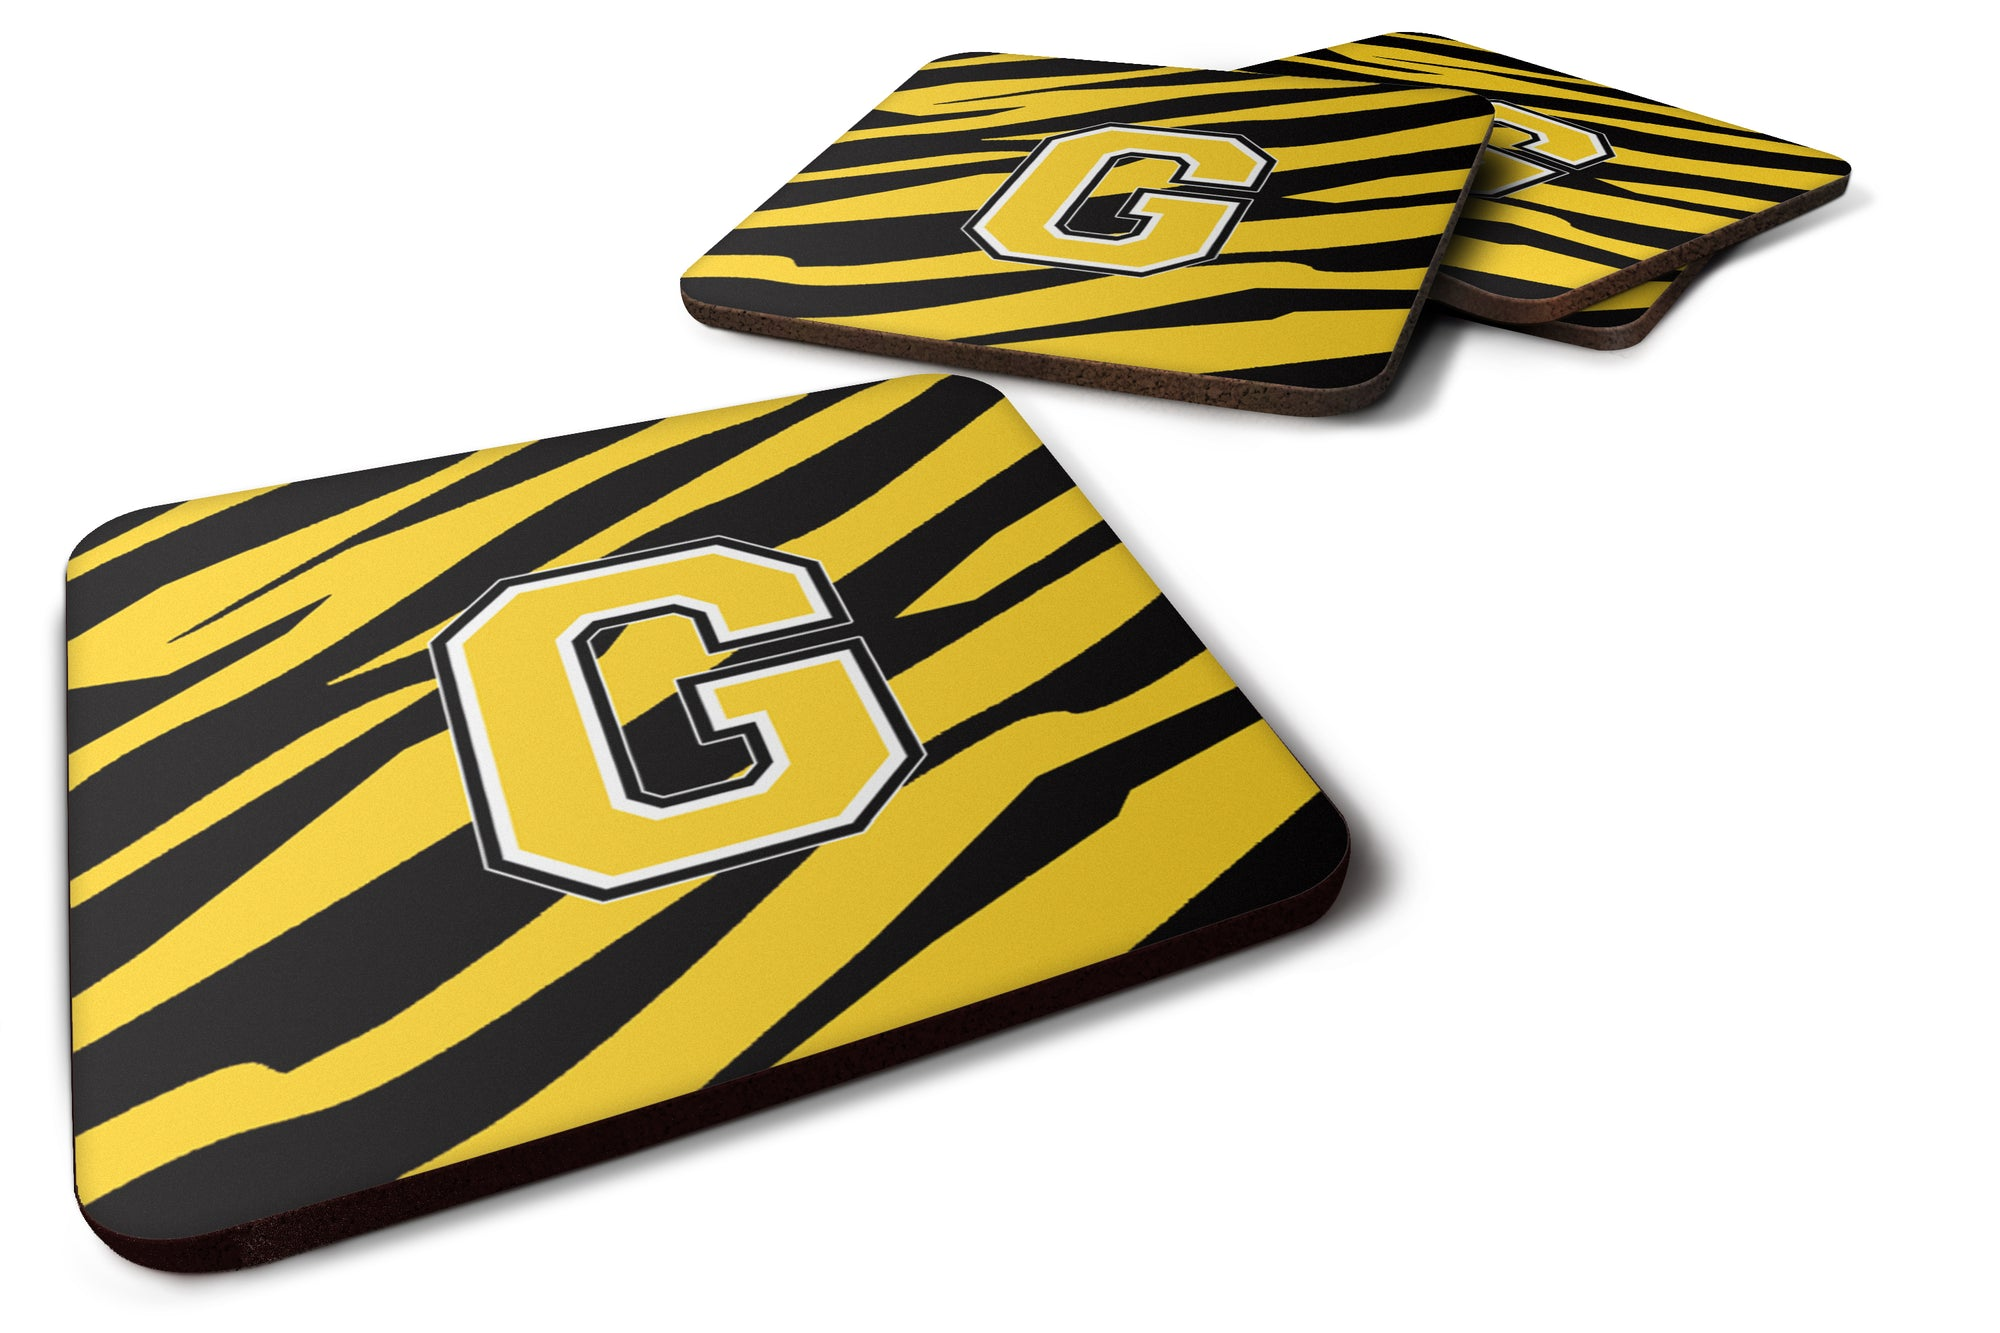 Set of 4 Monogram - Tiger Stripe - Black Gold Foam Coasters Initial Letter G by Caroline's Treasures